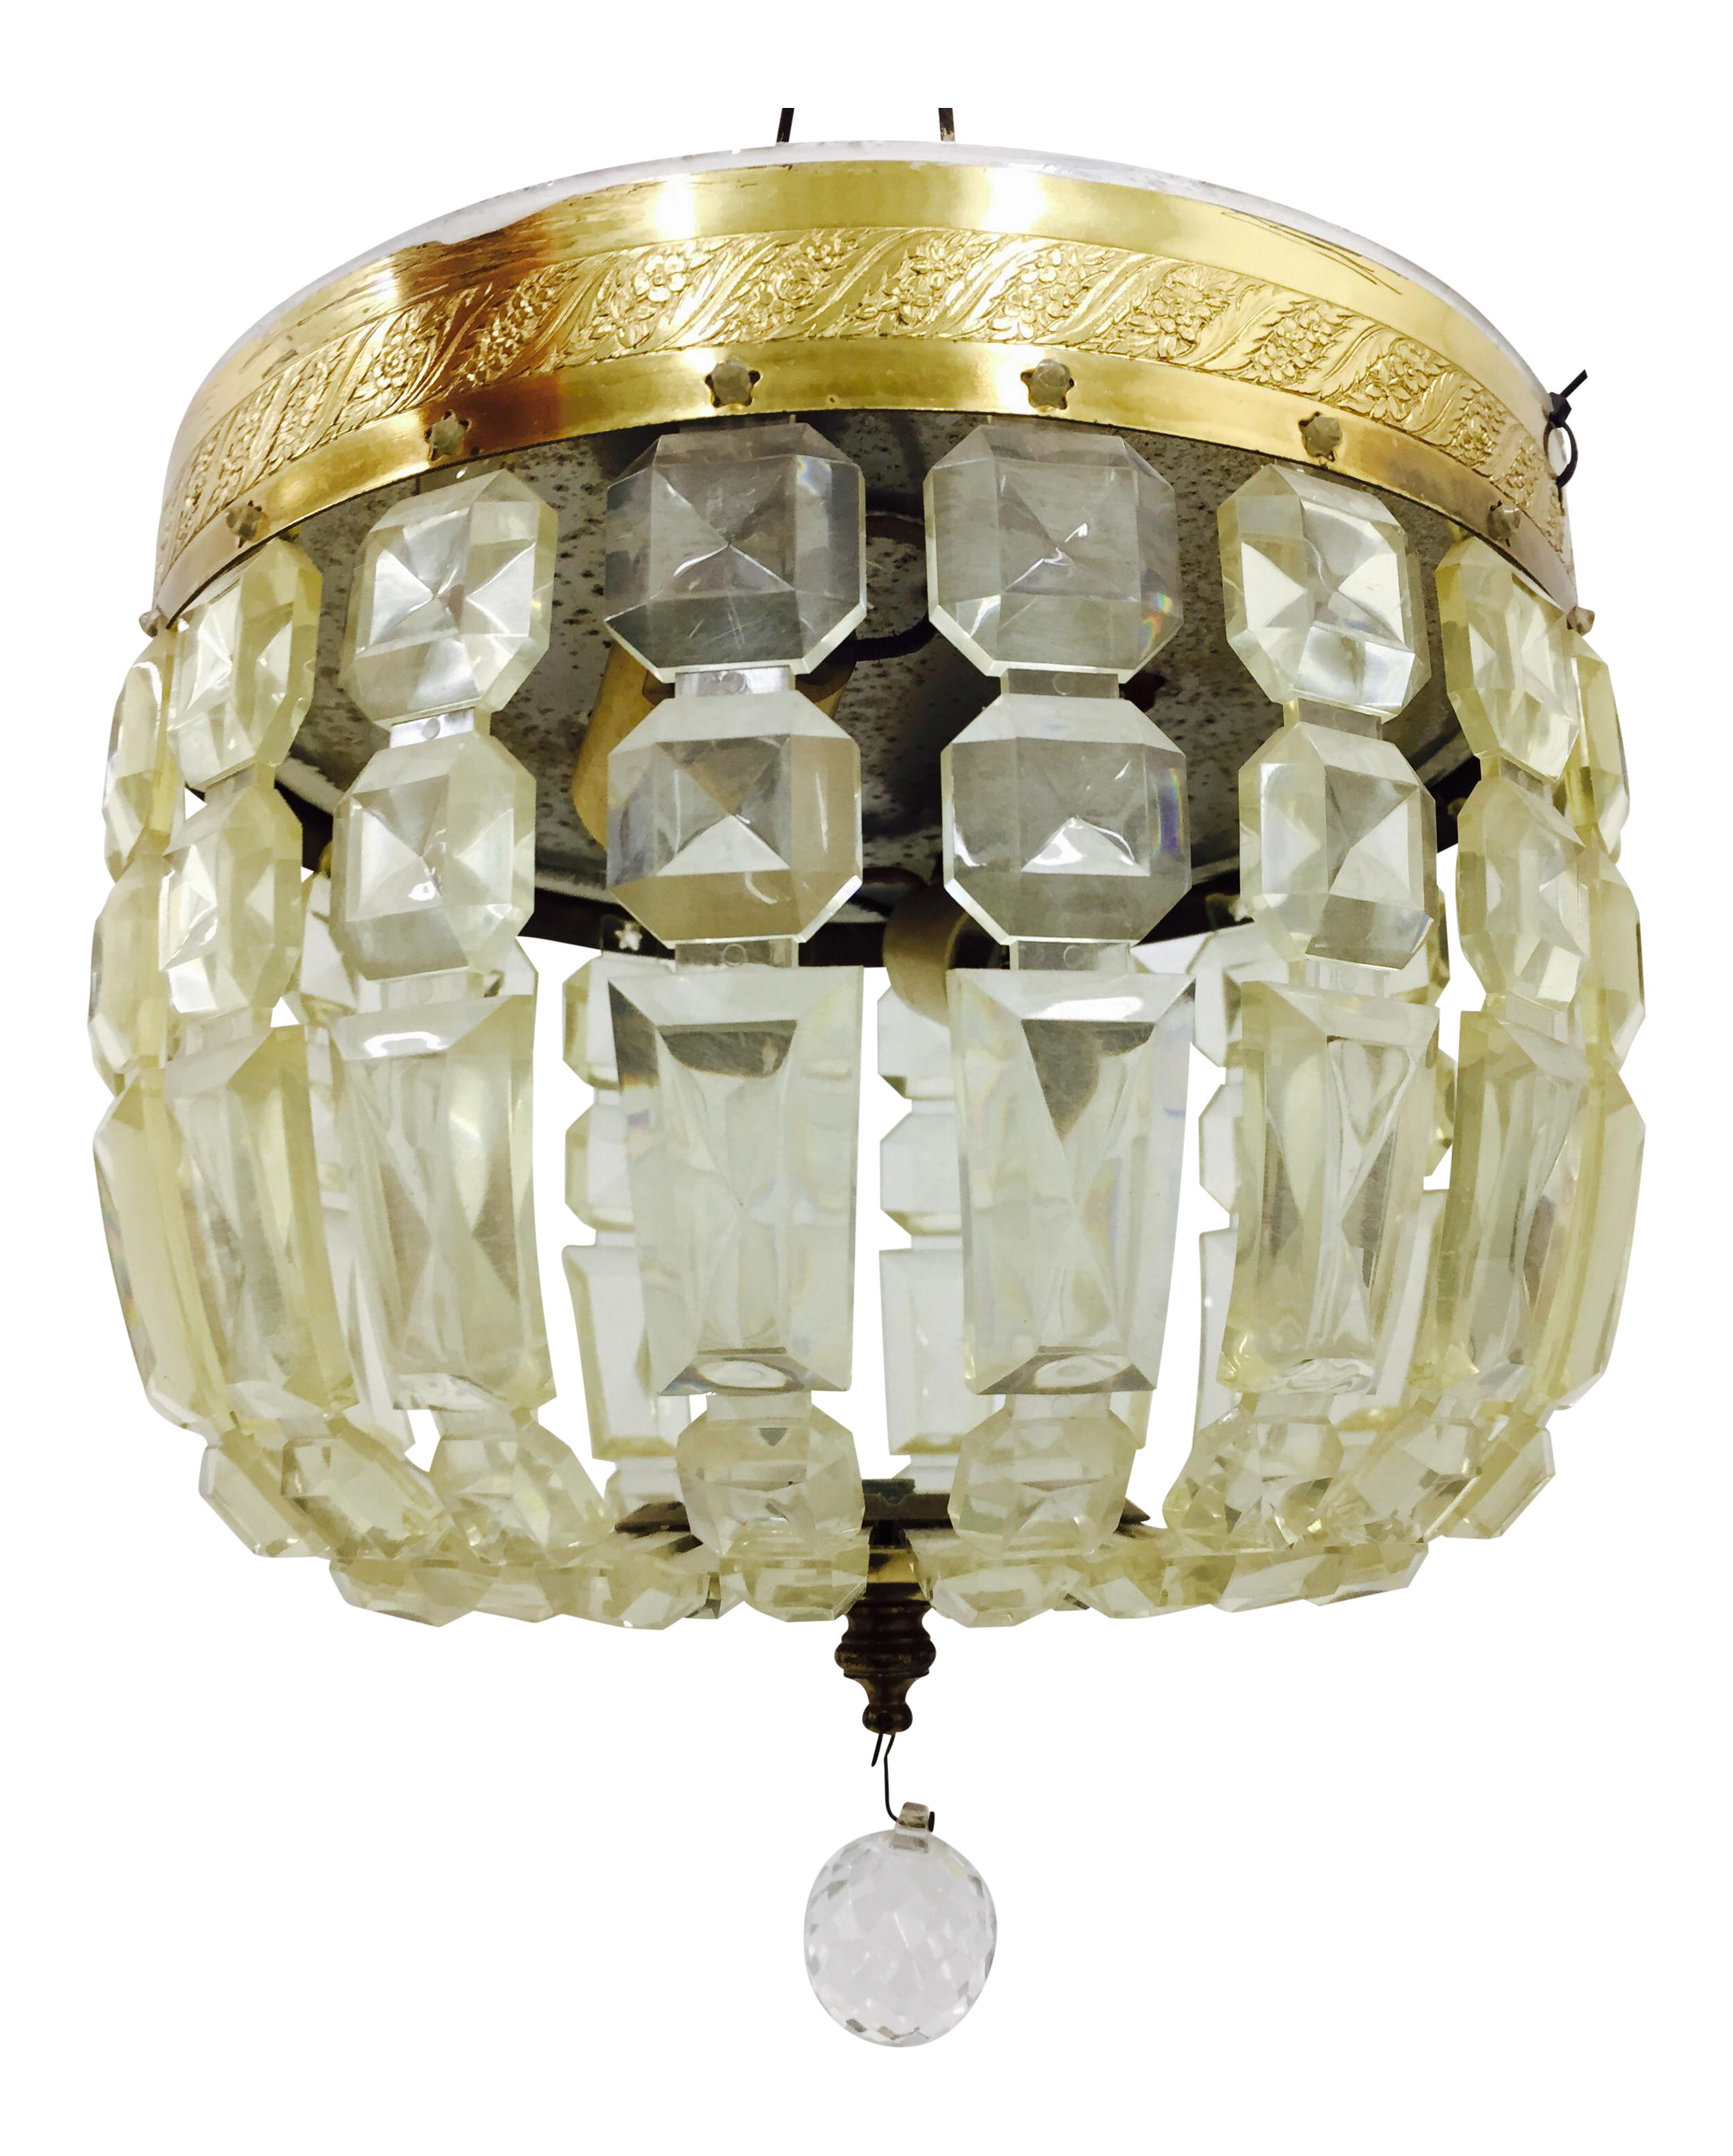 brass loading flush light fs mount flushmount ceiling vintage dark urban renewal zoom ceilings antique